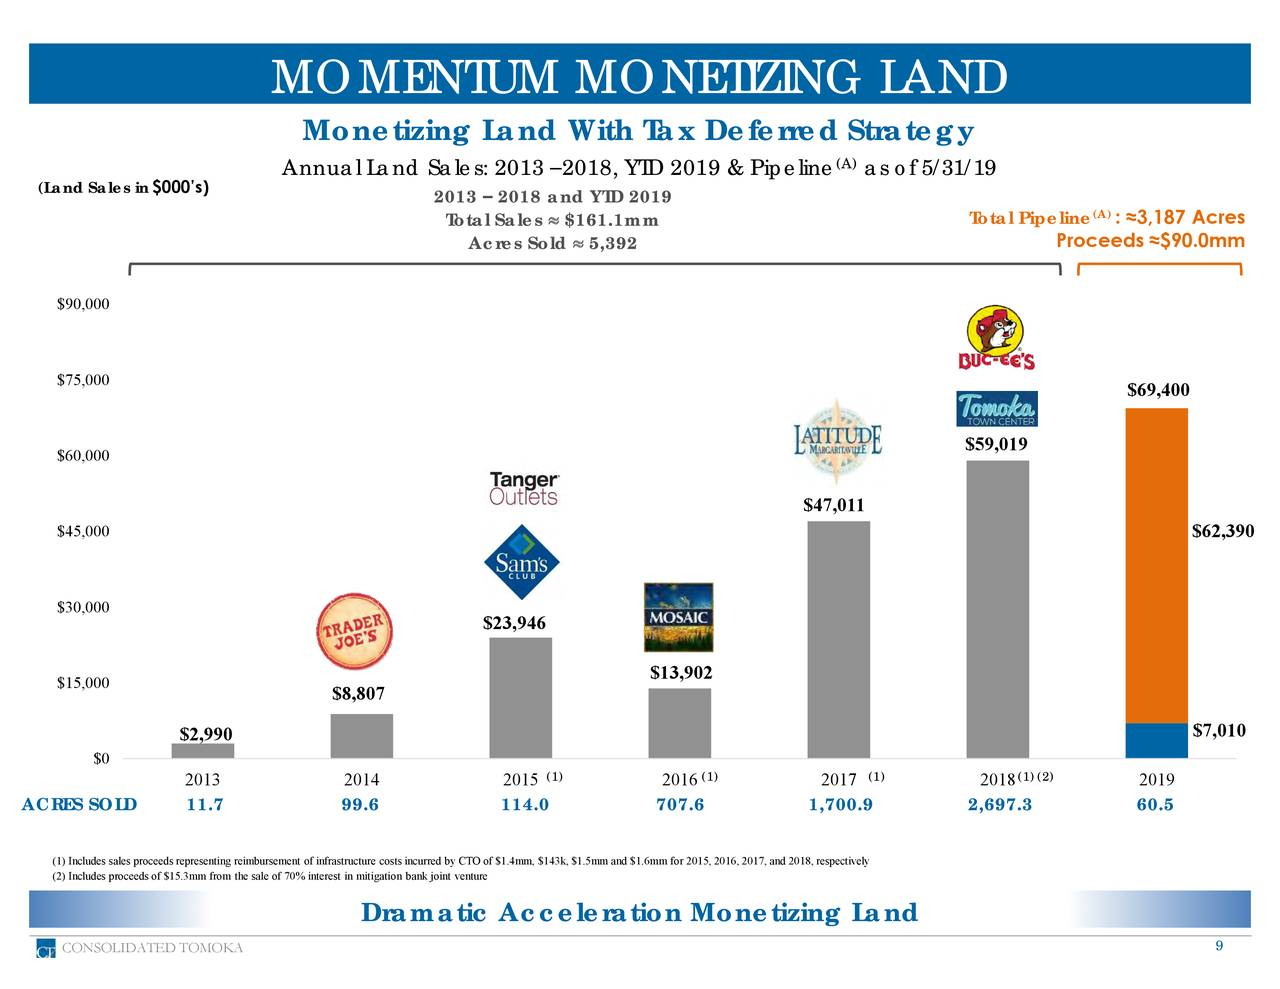 Monetizing Land With Tax Deferred Strategy Annual Land Sales: 2013 –2018, YTD 2019 & Pipeline (A)as of 5/31/19 (Land Sales in$000's) 2013 – 2018 and YTD 2019 Total Sales  $161.1mm Total Pipeline(A): ≈3,187 Acres Acres Sold  5,392 Proceeds ≈$90.0mm $90,000 $75,000 $69,400 $59,019 $60,000 $47,011 $45,000 $62,390 $30,000 $23,946 $13,902 $15,000 $8,807 $7,010 $2,990 $0 2013 2014 2015 (1) 2016 (1) 2017 (1) 2018 (1)(2) 2019 ACRES SOLD 11.7 99.6 114.0 707.6 1,700.9 2,697.3 60.5 (1) Includes sales proceeds representing reimbursement of infrastructure costs incurred by CTO of $1.4mm, $143k, $1.5mm and $1.6mm for 2015, 2016, 2017, and 2018, respectively (2) Includes proceeds of $15.3mm from the sale of 70% interest in mitigation bank joint venture Dramatic Acceleration Monetizing Land CONSOLIDATED TOMOKA 9